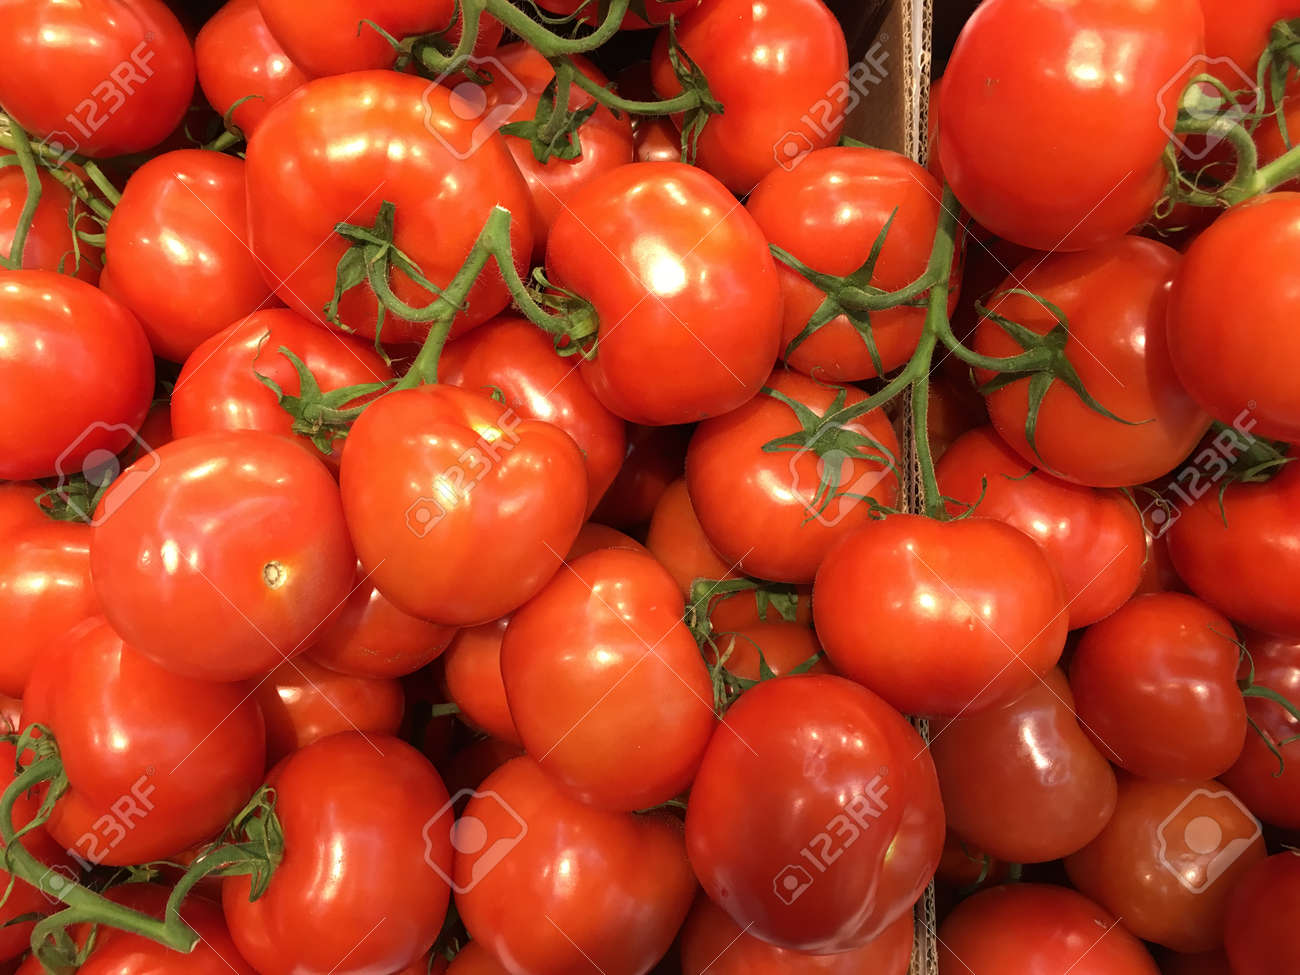 Tasty red tomatoes with green leaves in the box on market - 122517177